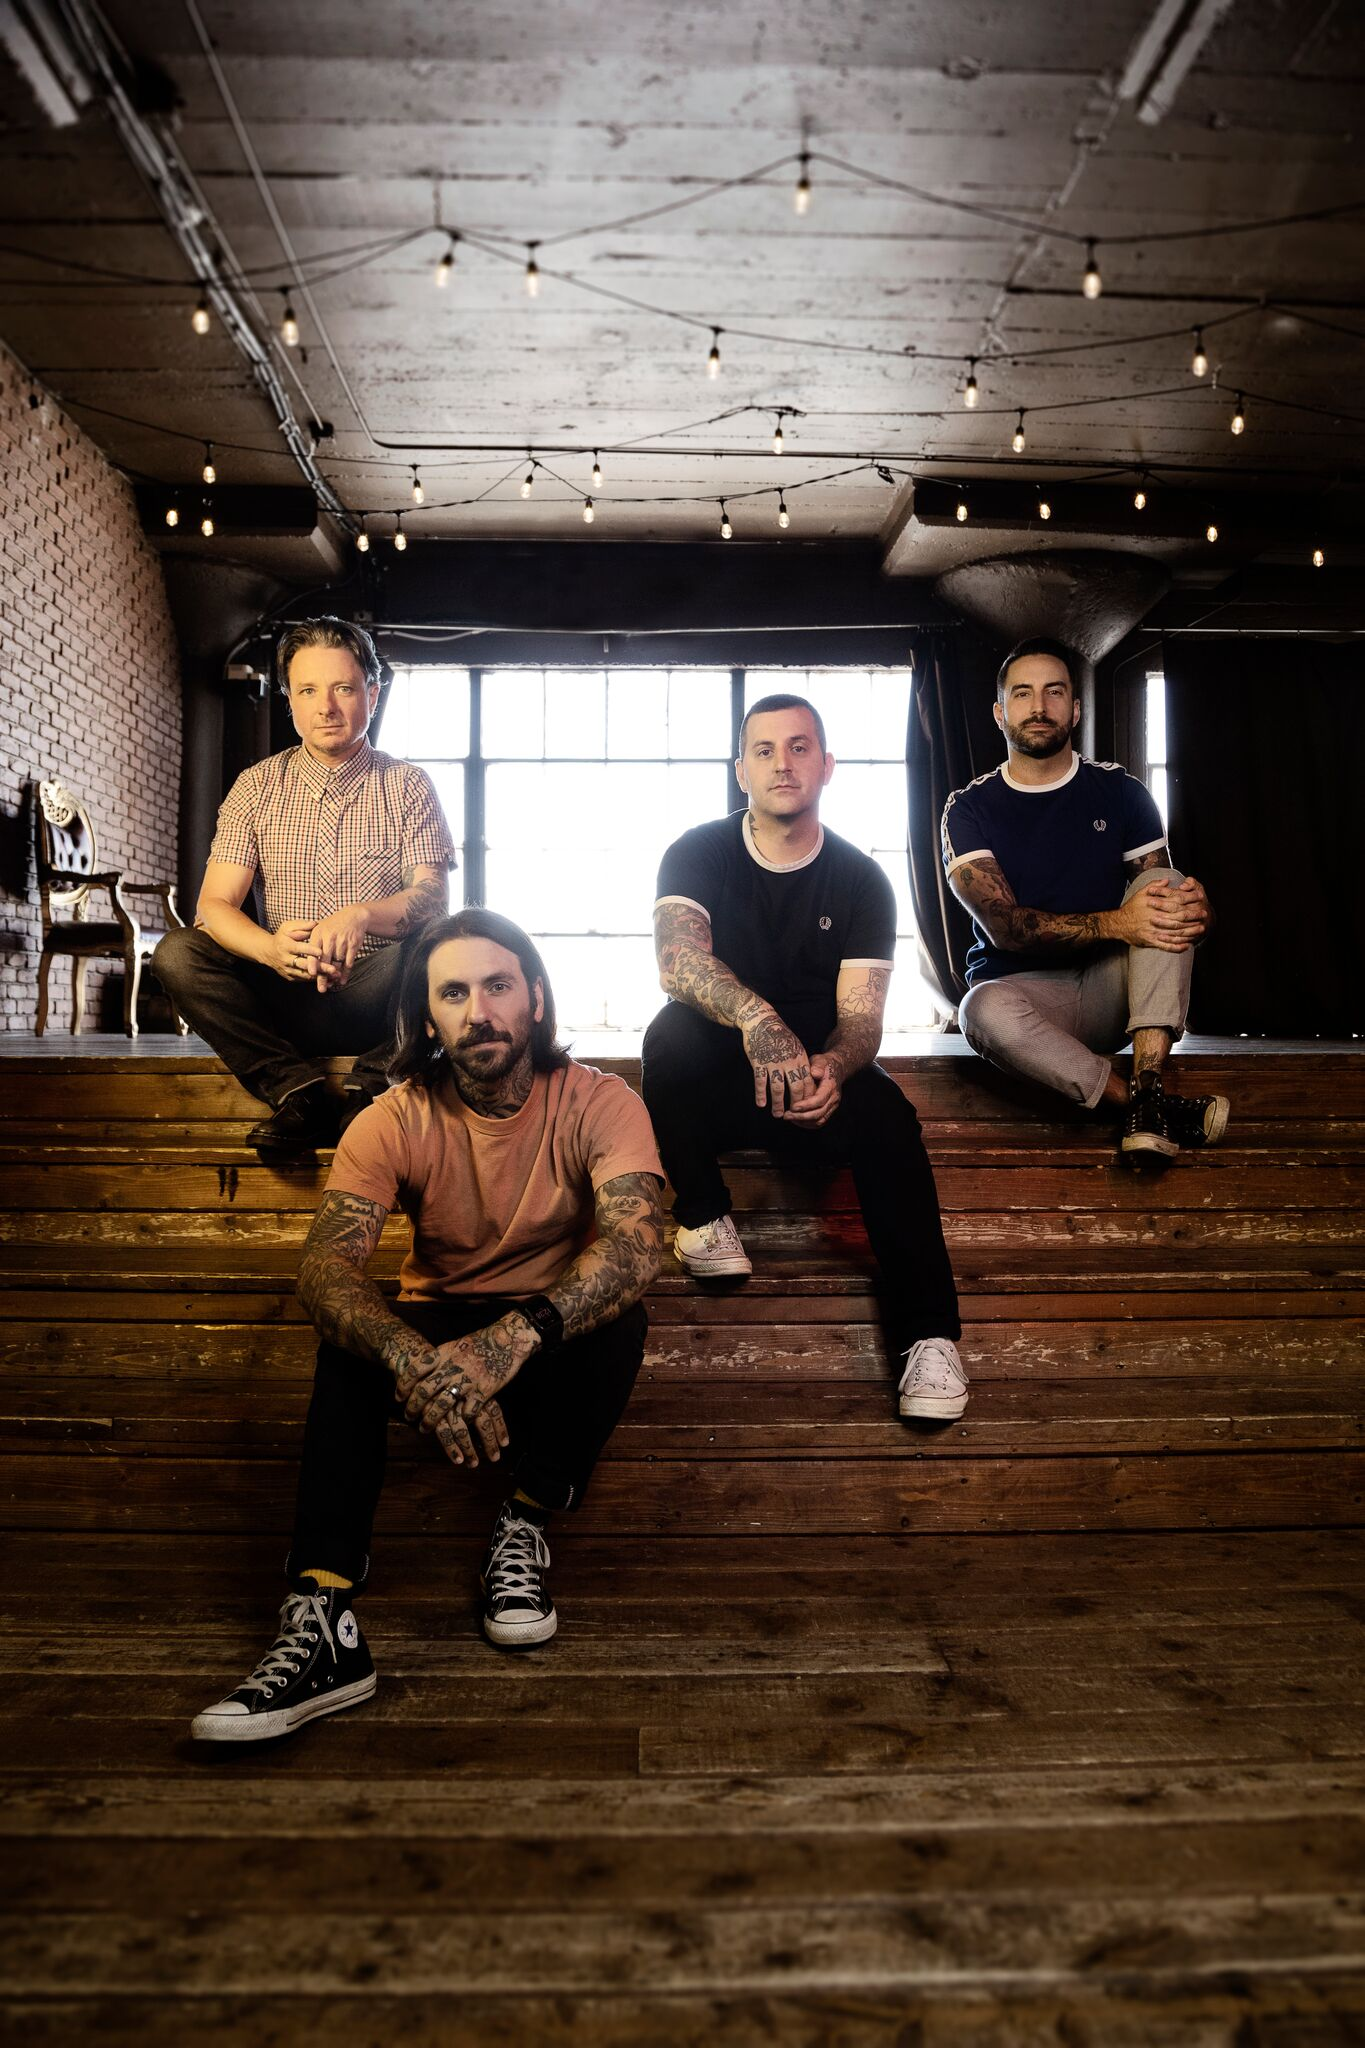 Bayside announces new tour along with opener contest